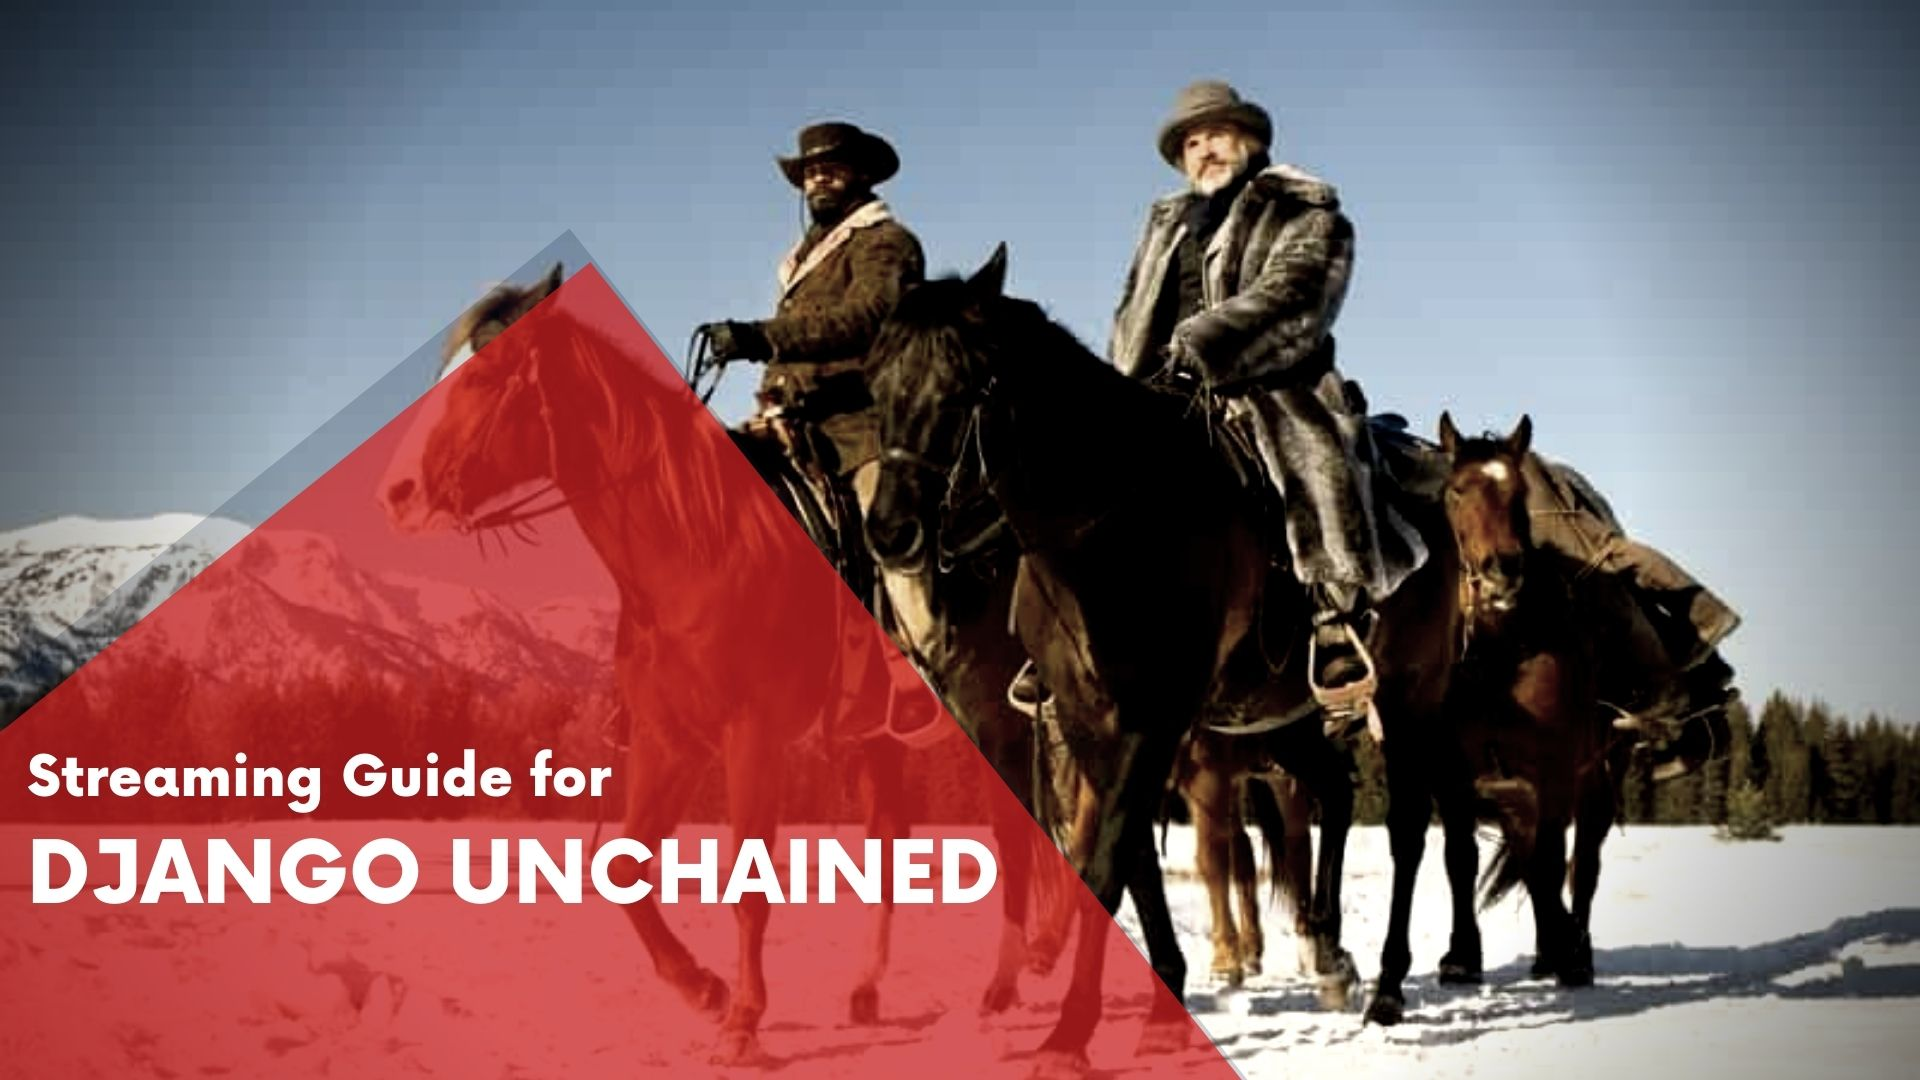 Answering if Django Unchained can be watched online on Hulu